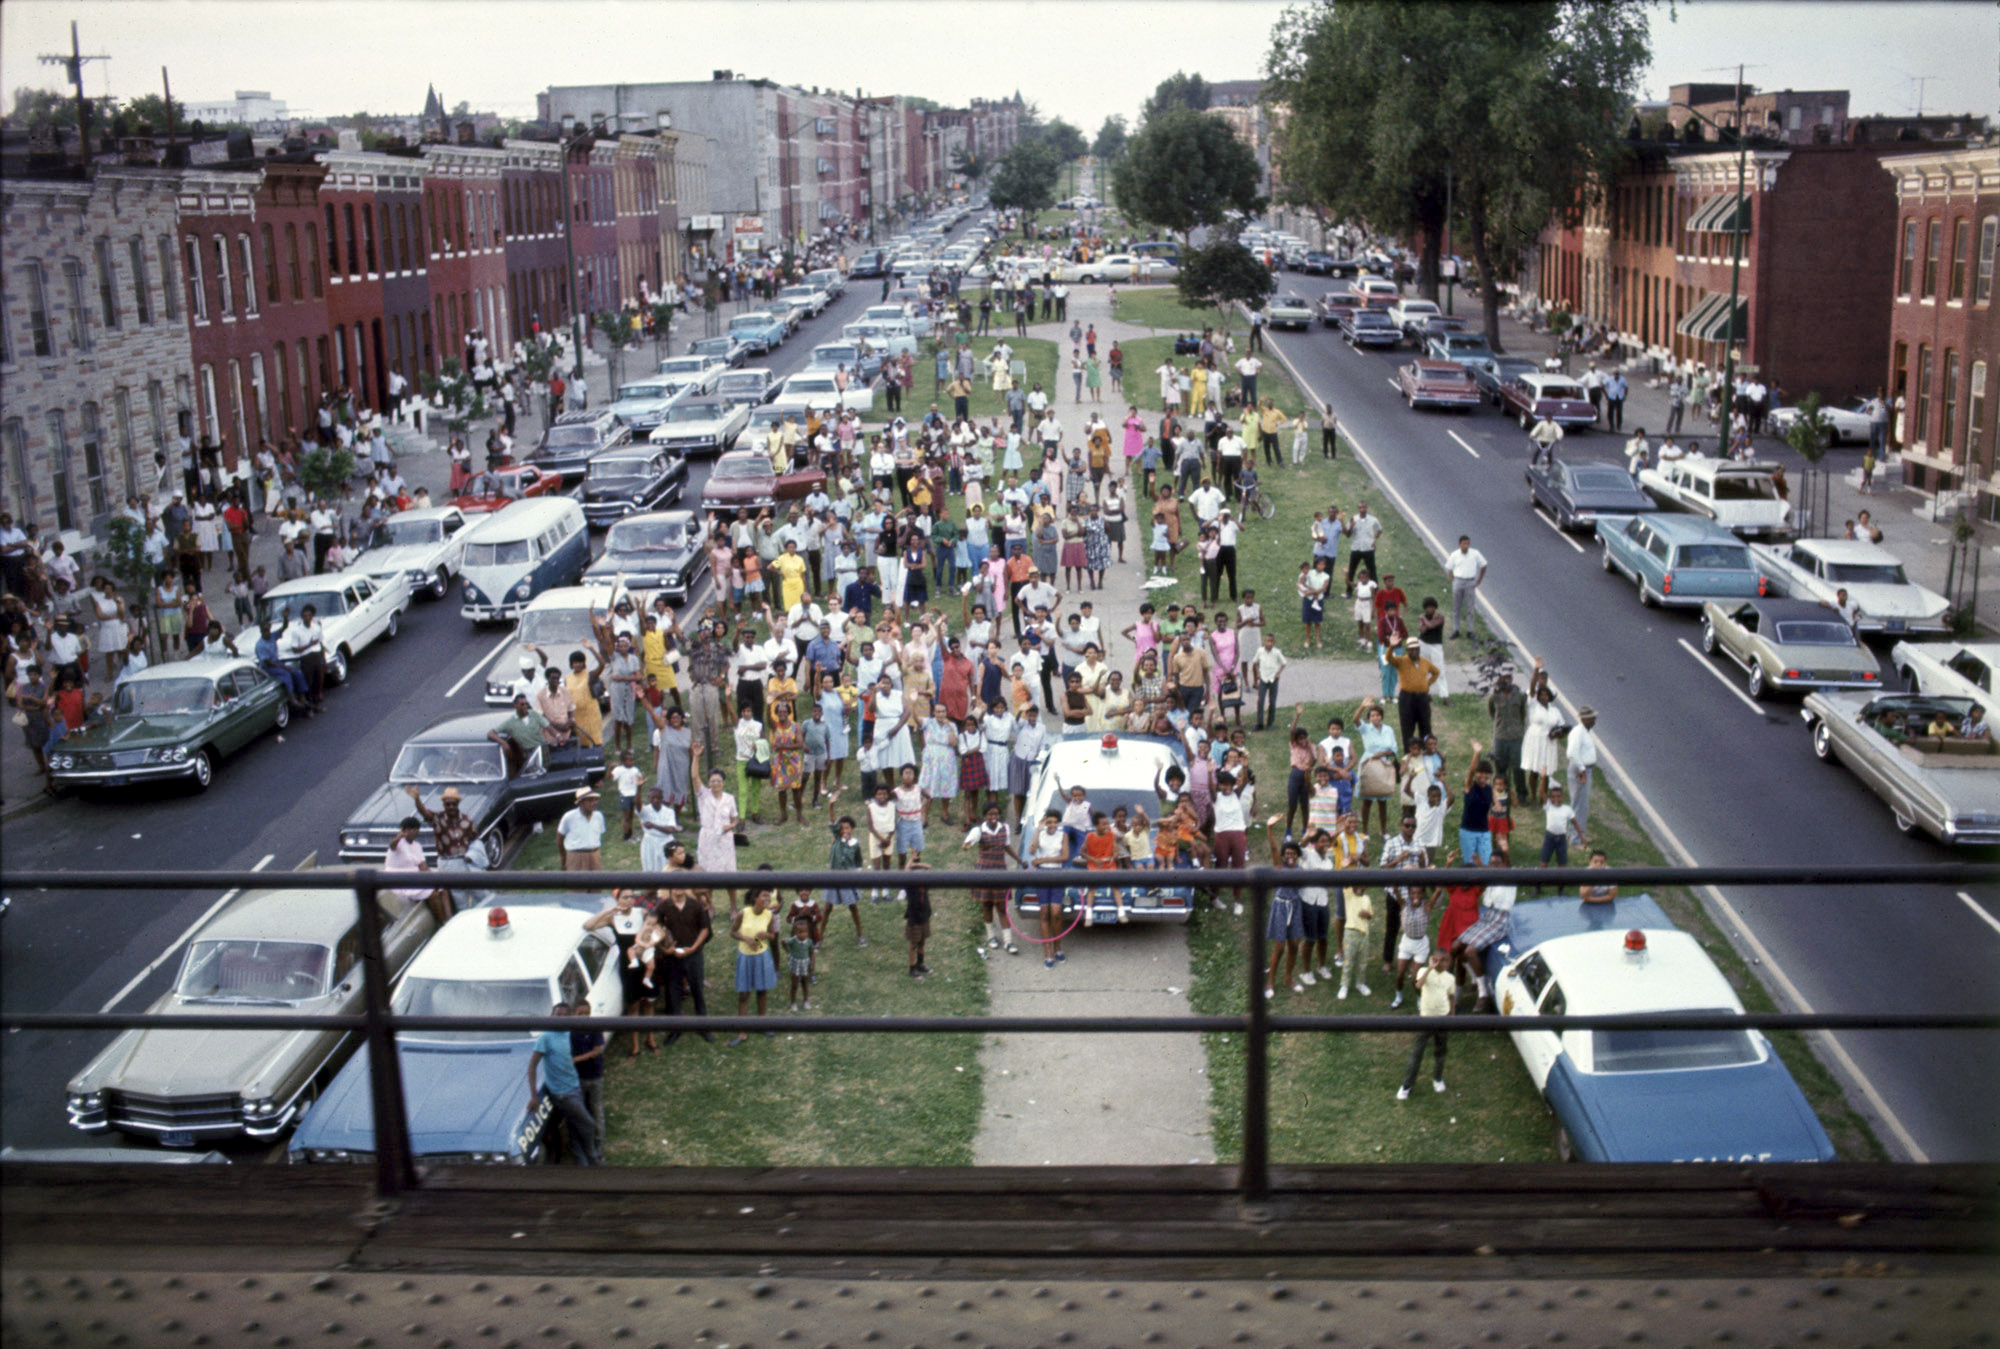 Watching the Robert F. Kennedy funeral train from Boradway, June 8,1968. Baltimore, Md. by Bill Eppridge